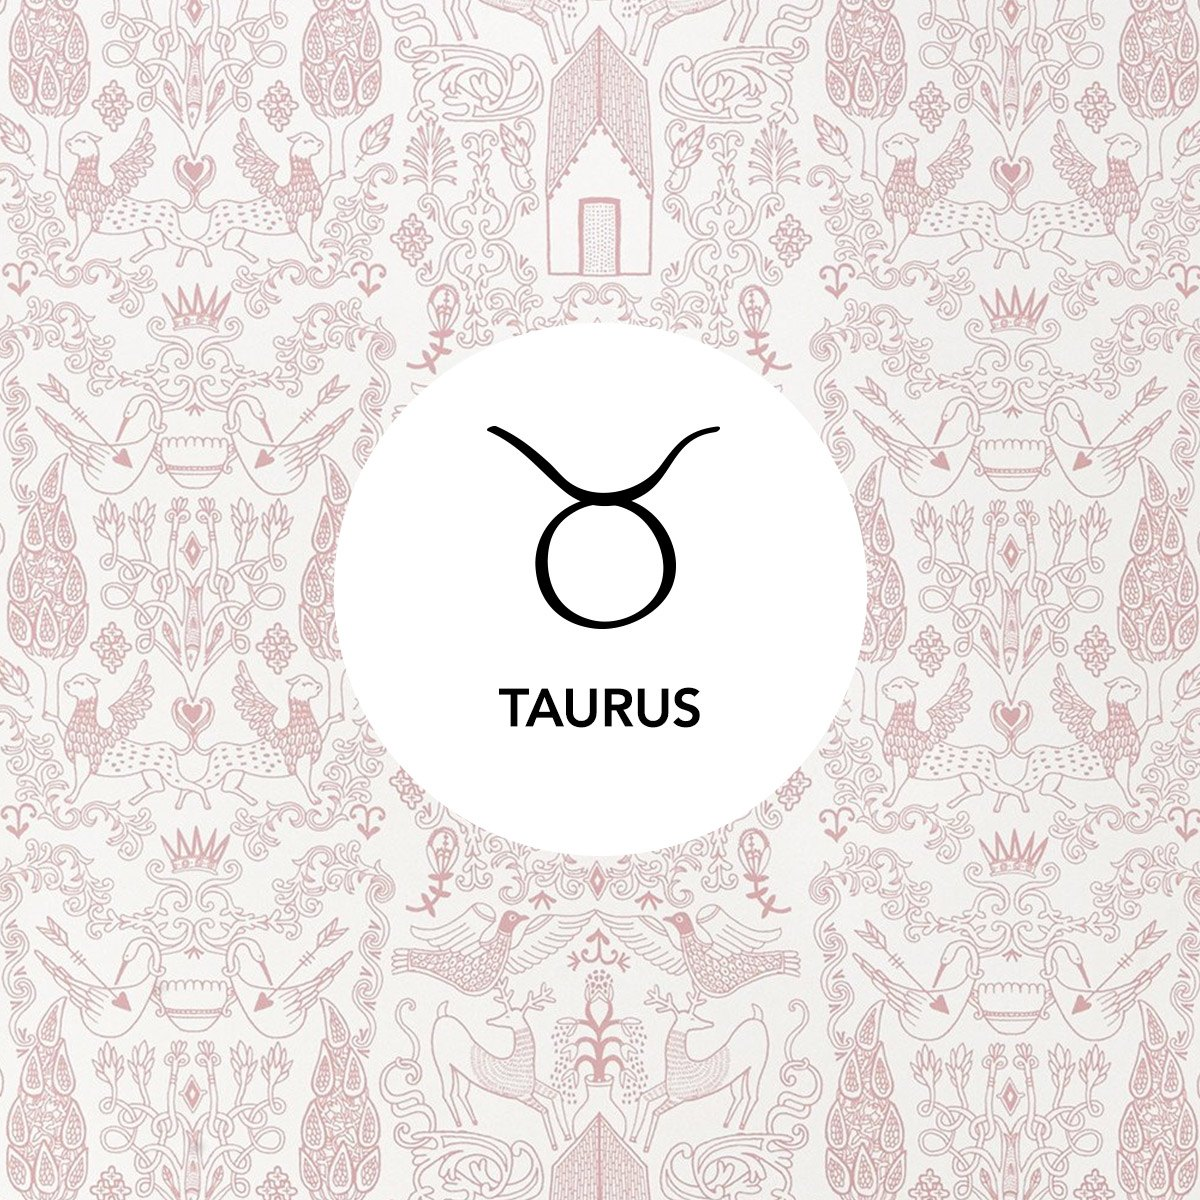 Taurus | Nethercote Rose wallpaper | Julia Rothman | Hygge & West